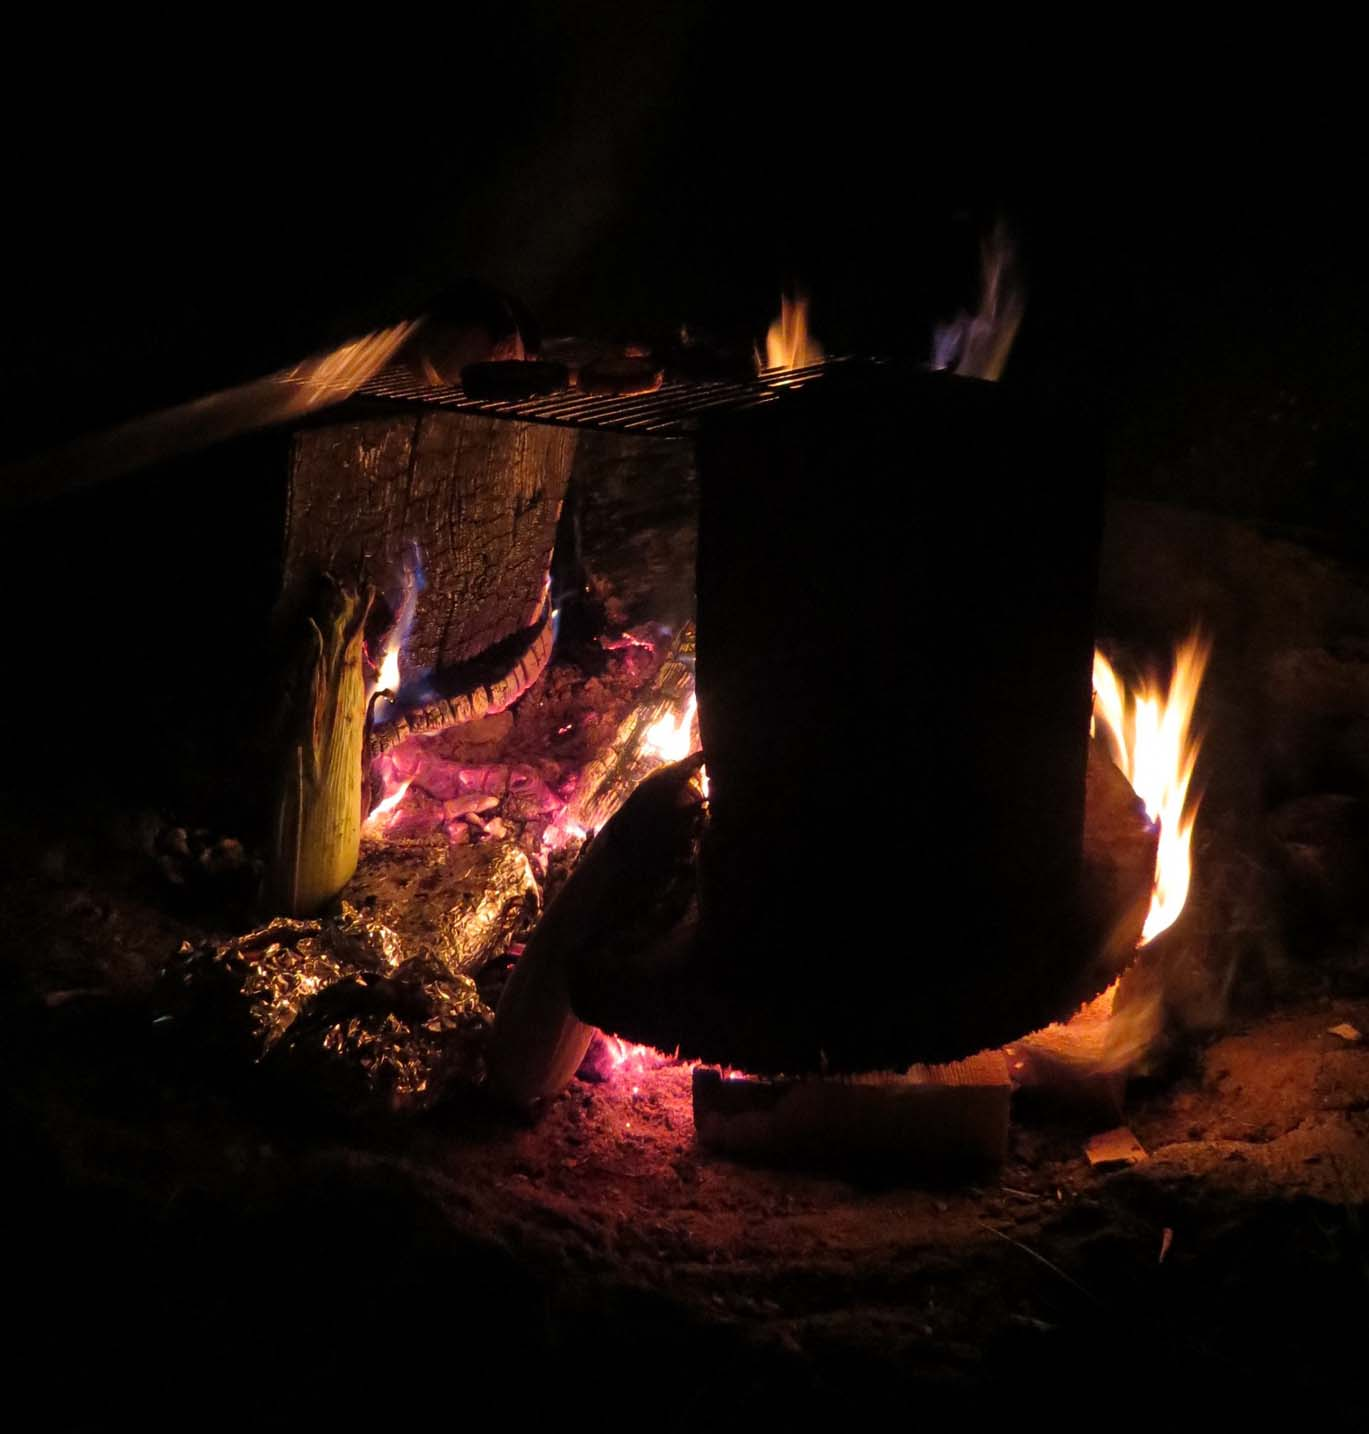 Campfire with grate and food cooking